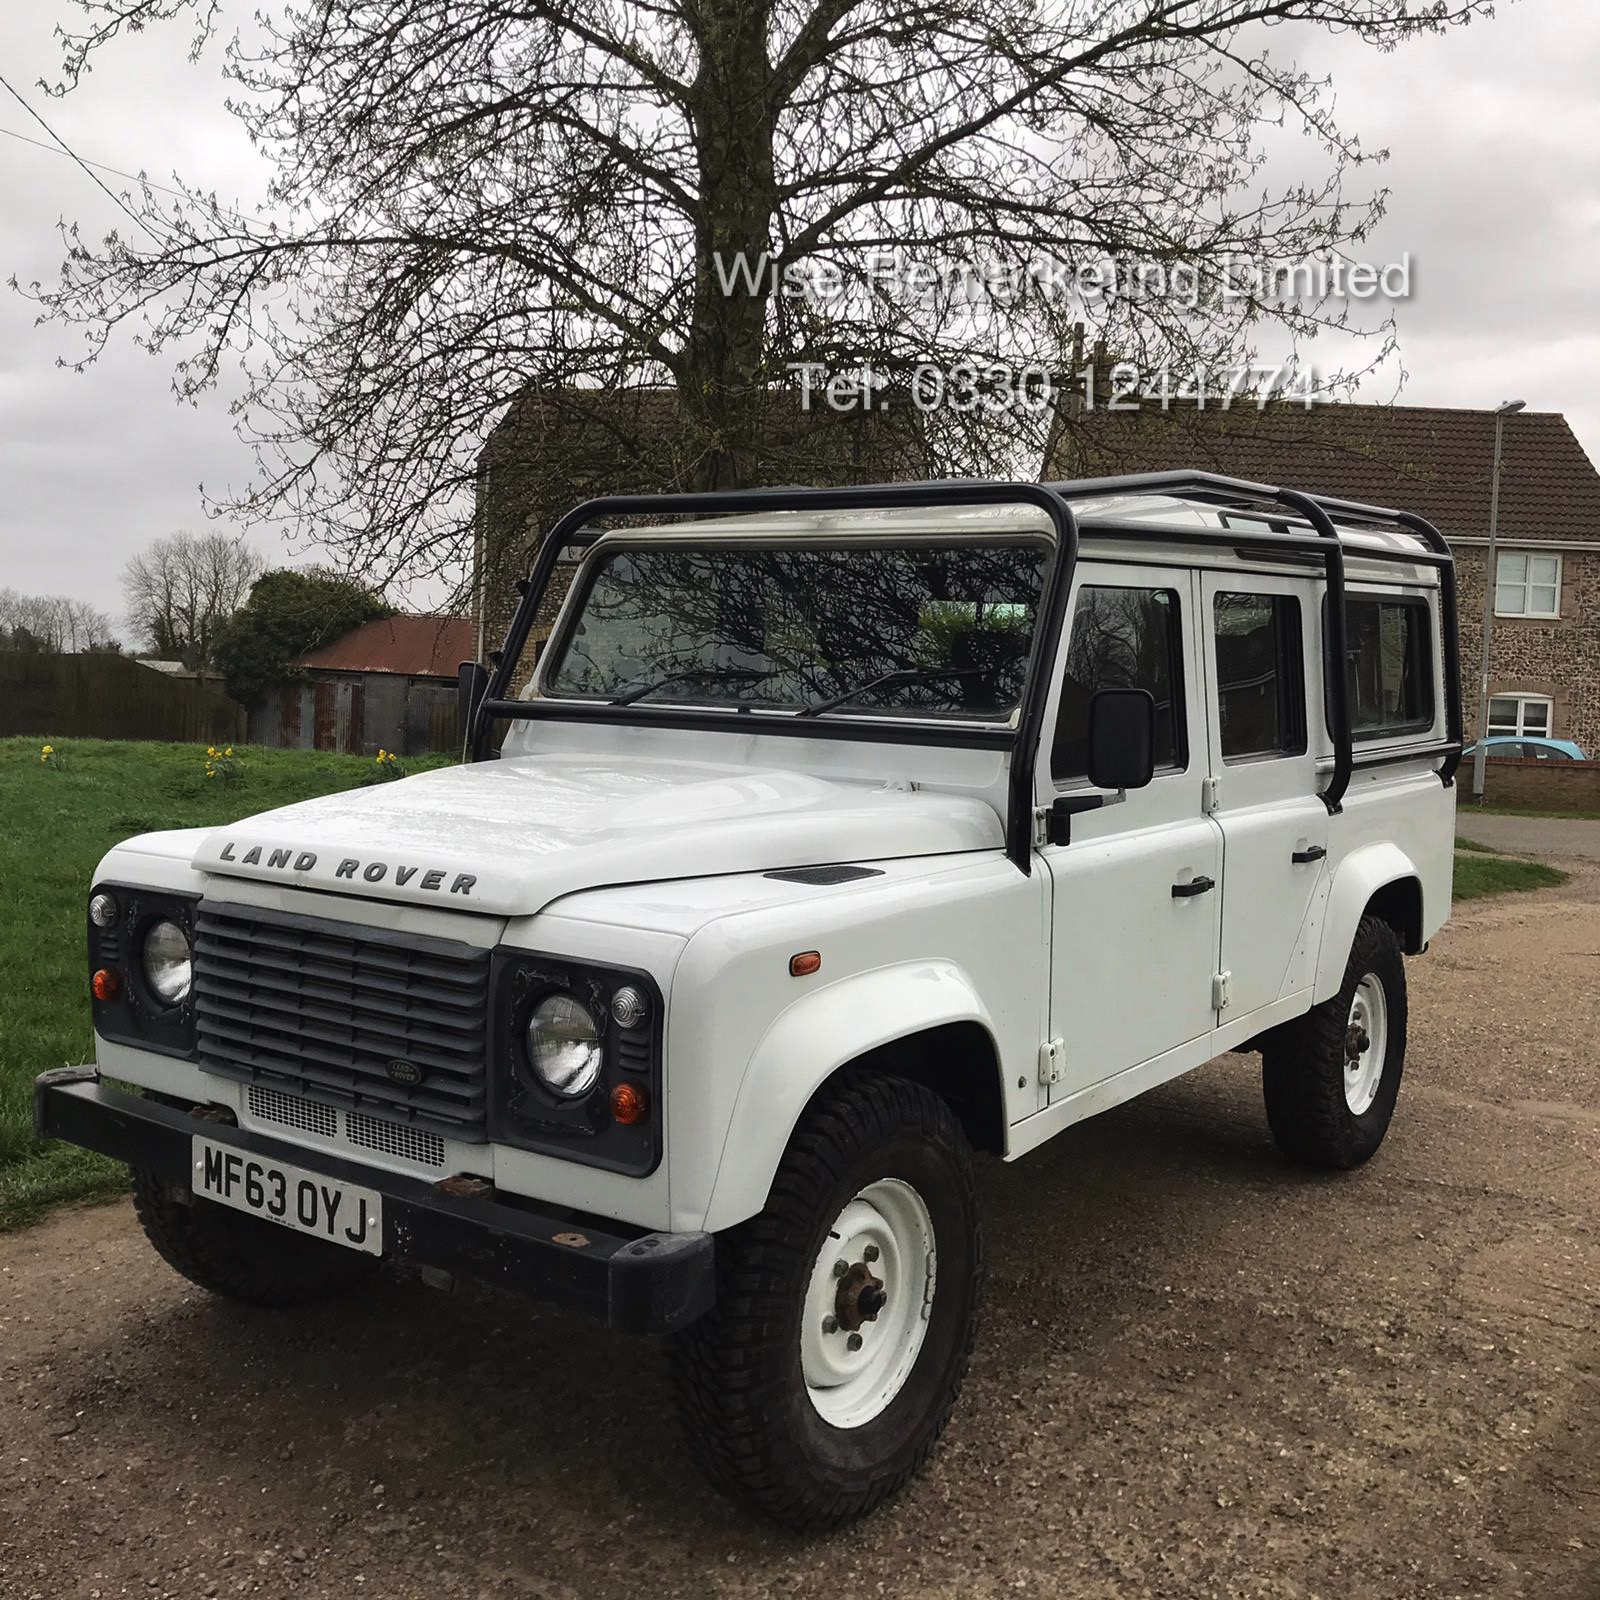 Land Rover Defender 110 2.2 TD County Station Wagon - 2014 Model - 1 Owner From New - ONLY 19K Miles - Image 2 of 21